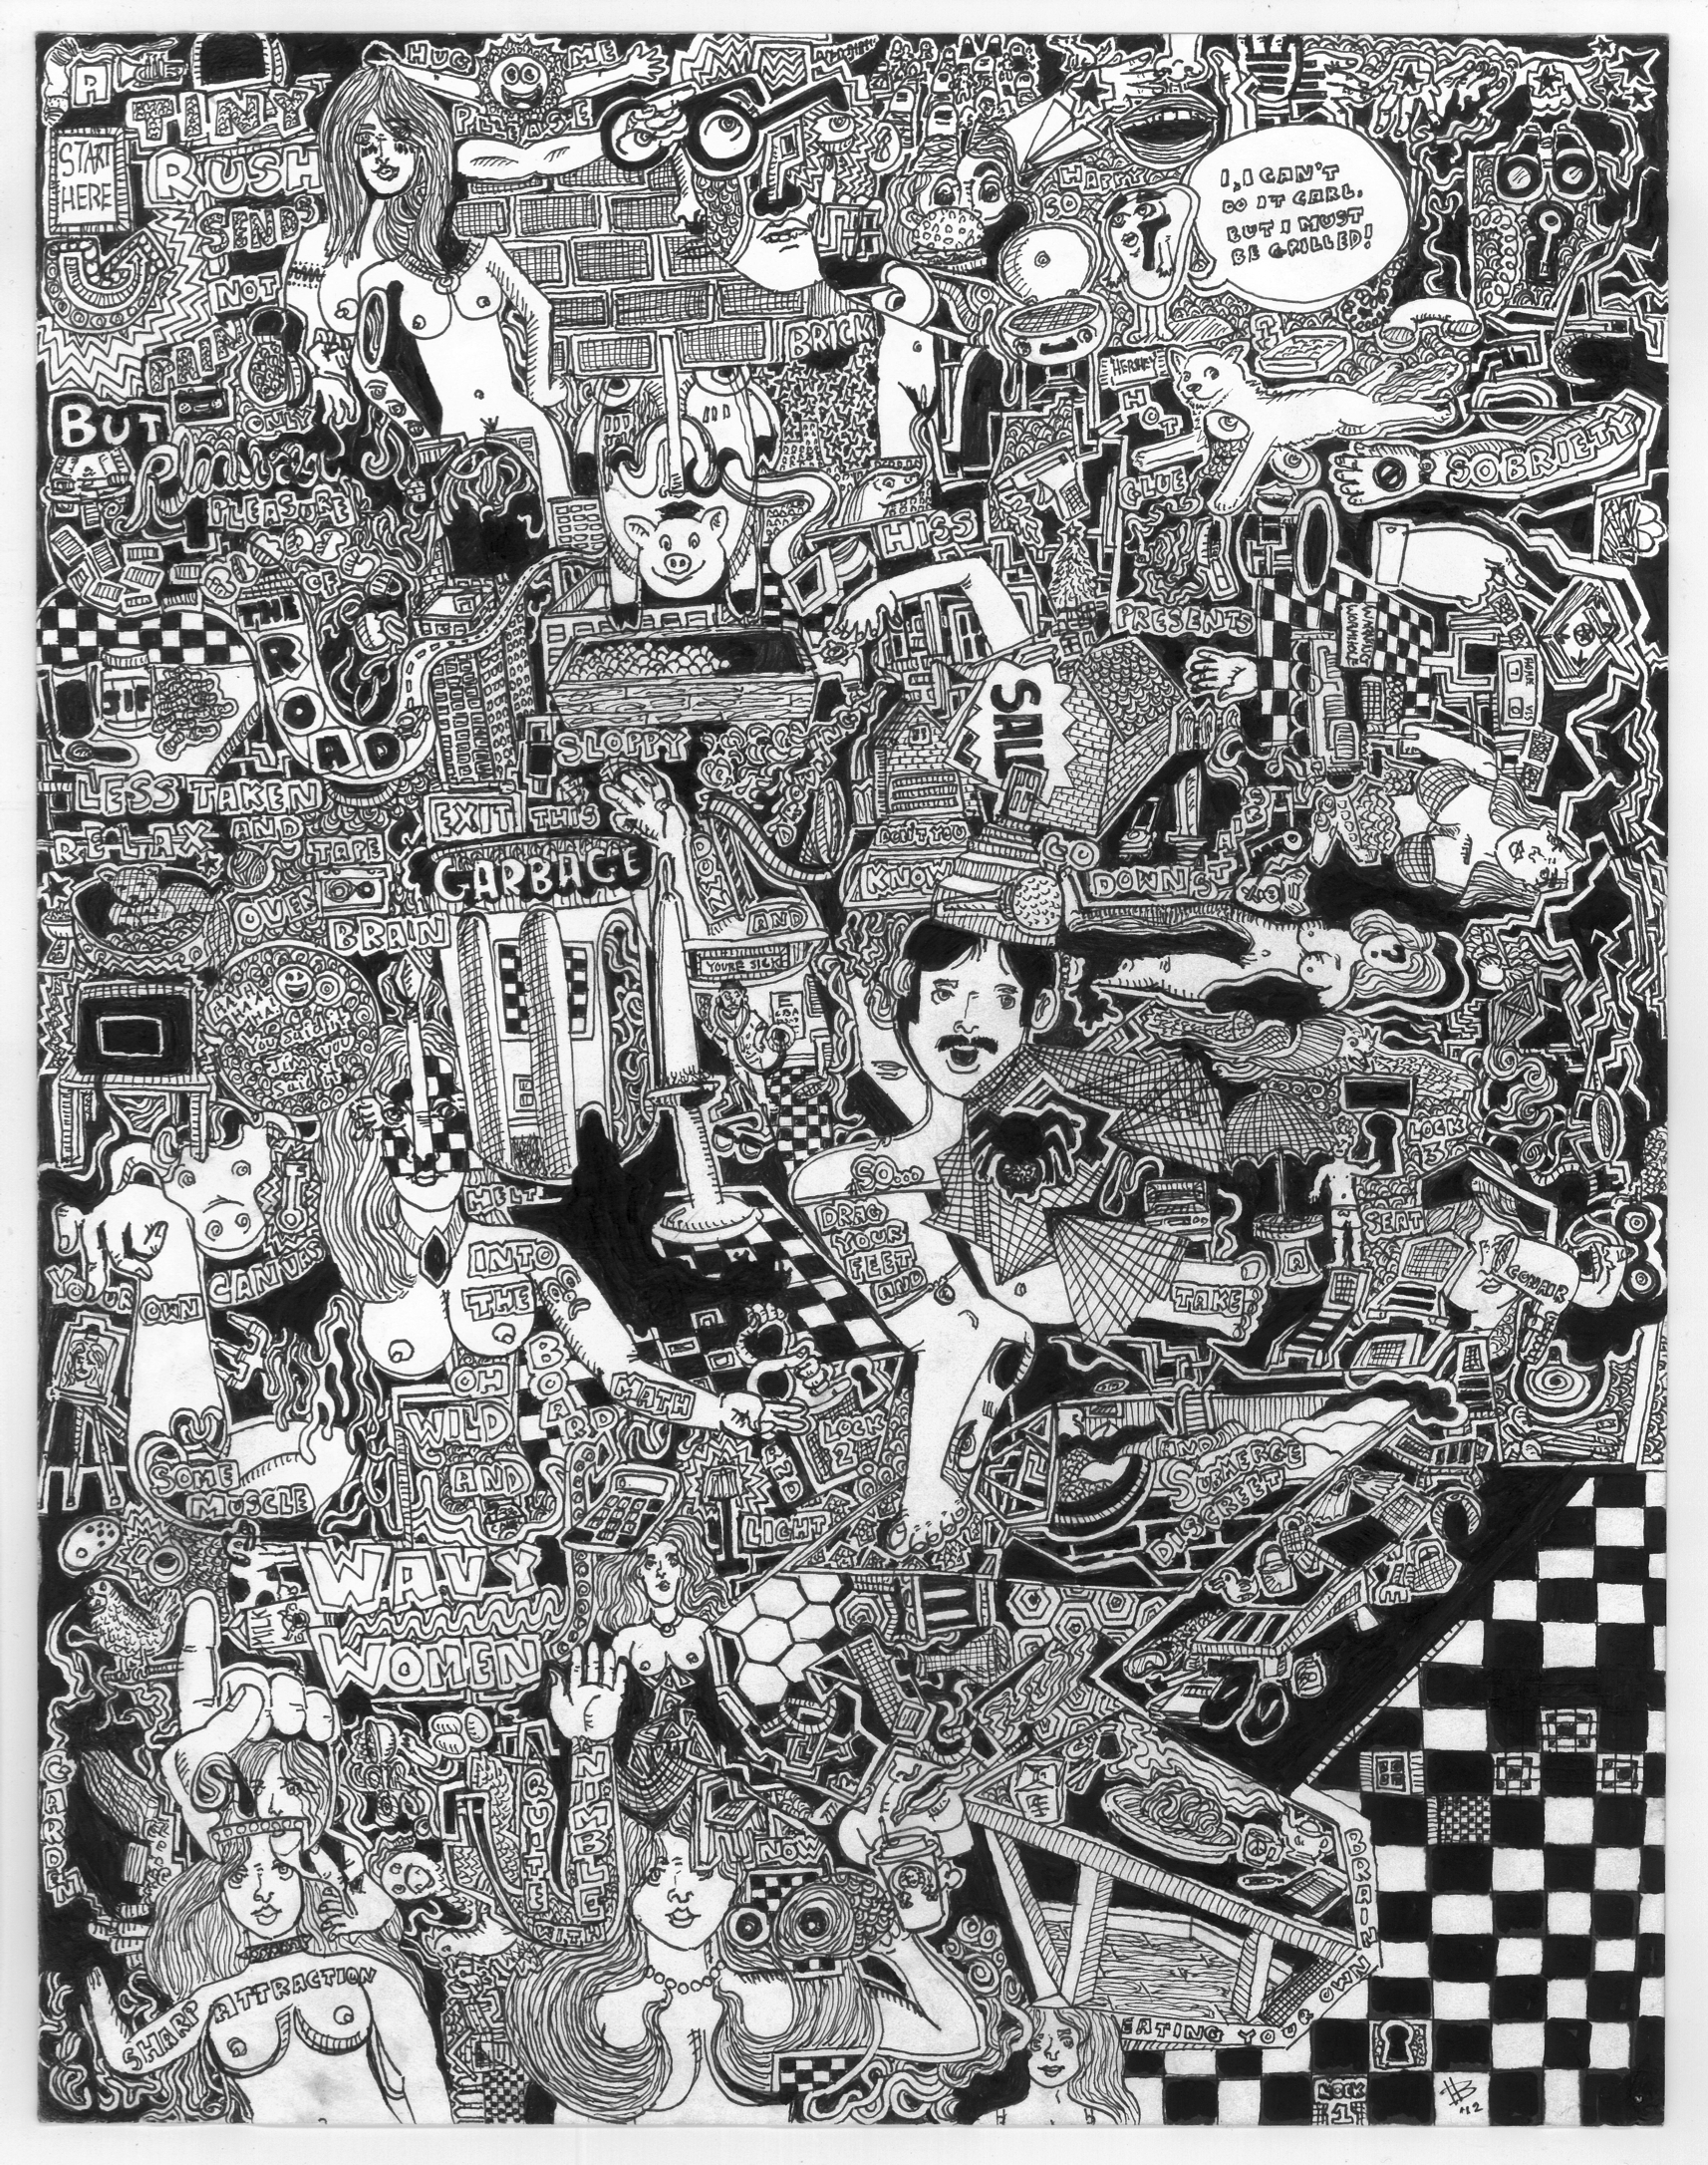 Back Half Of The Chessboard